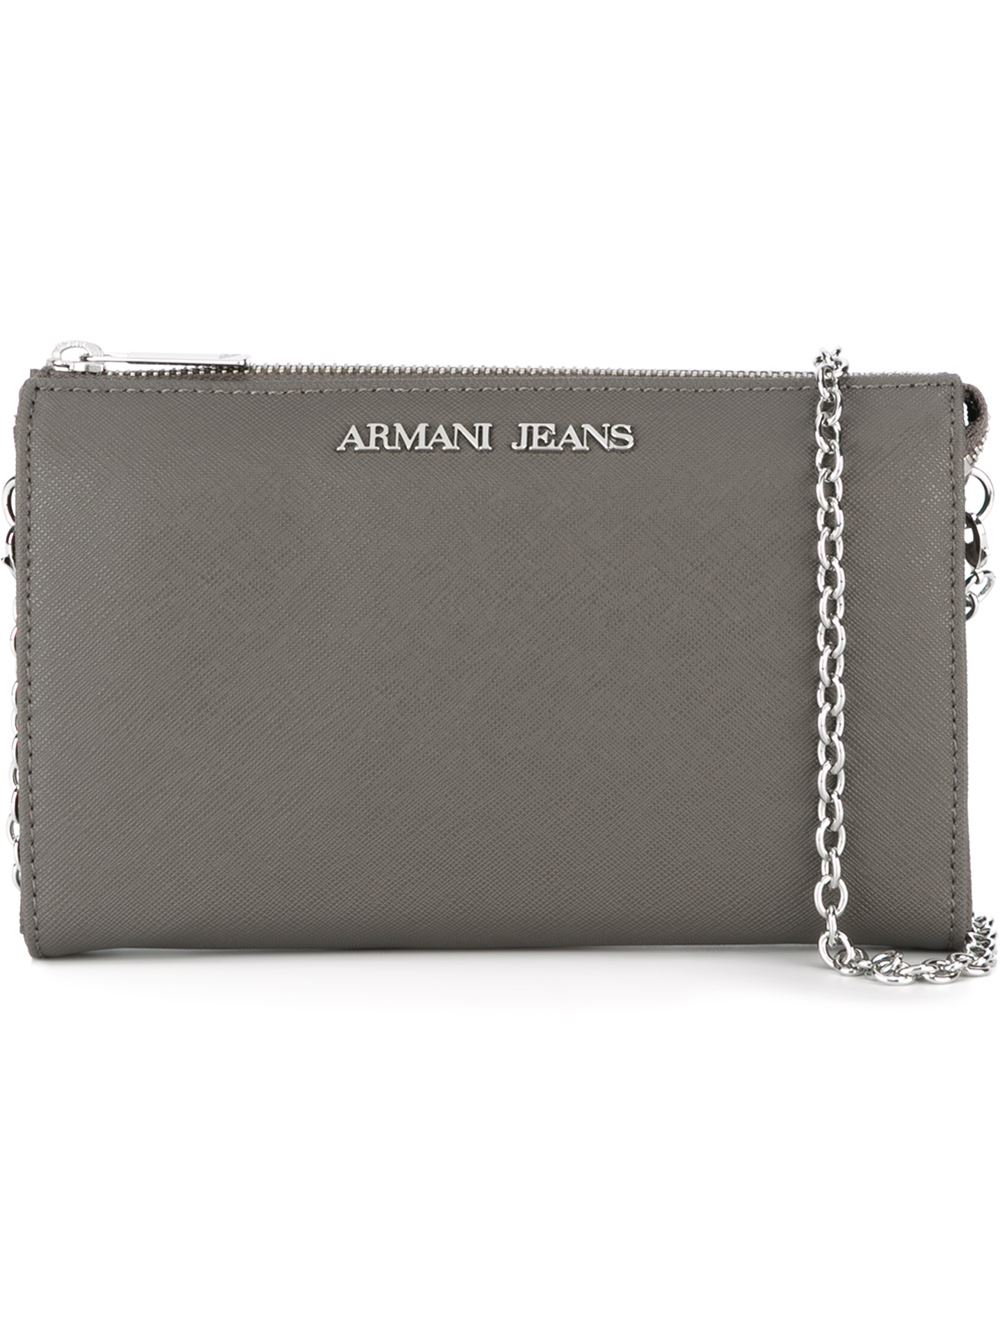 Lyst - Armani Jeans Zipped Slim Cross Body Bag in Gray eb723f2f3ce